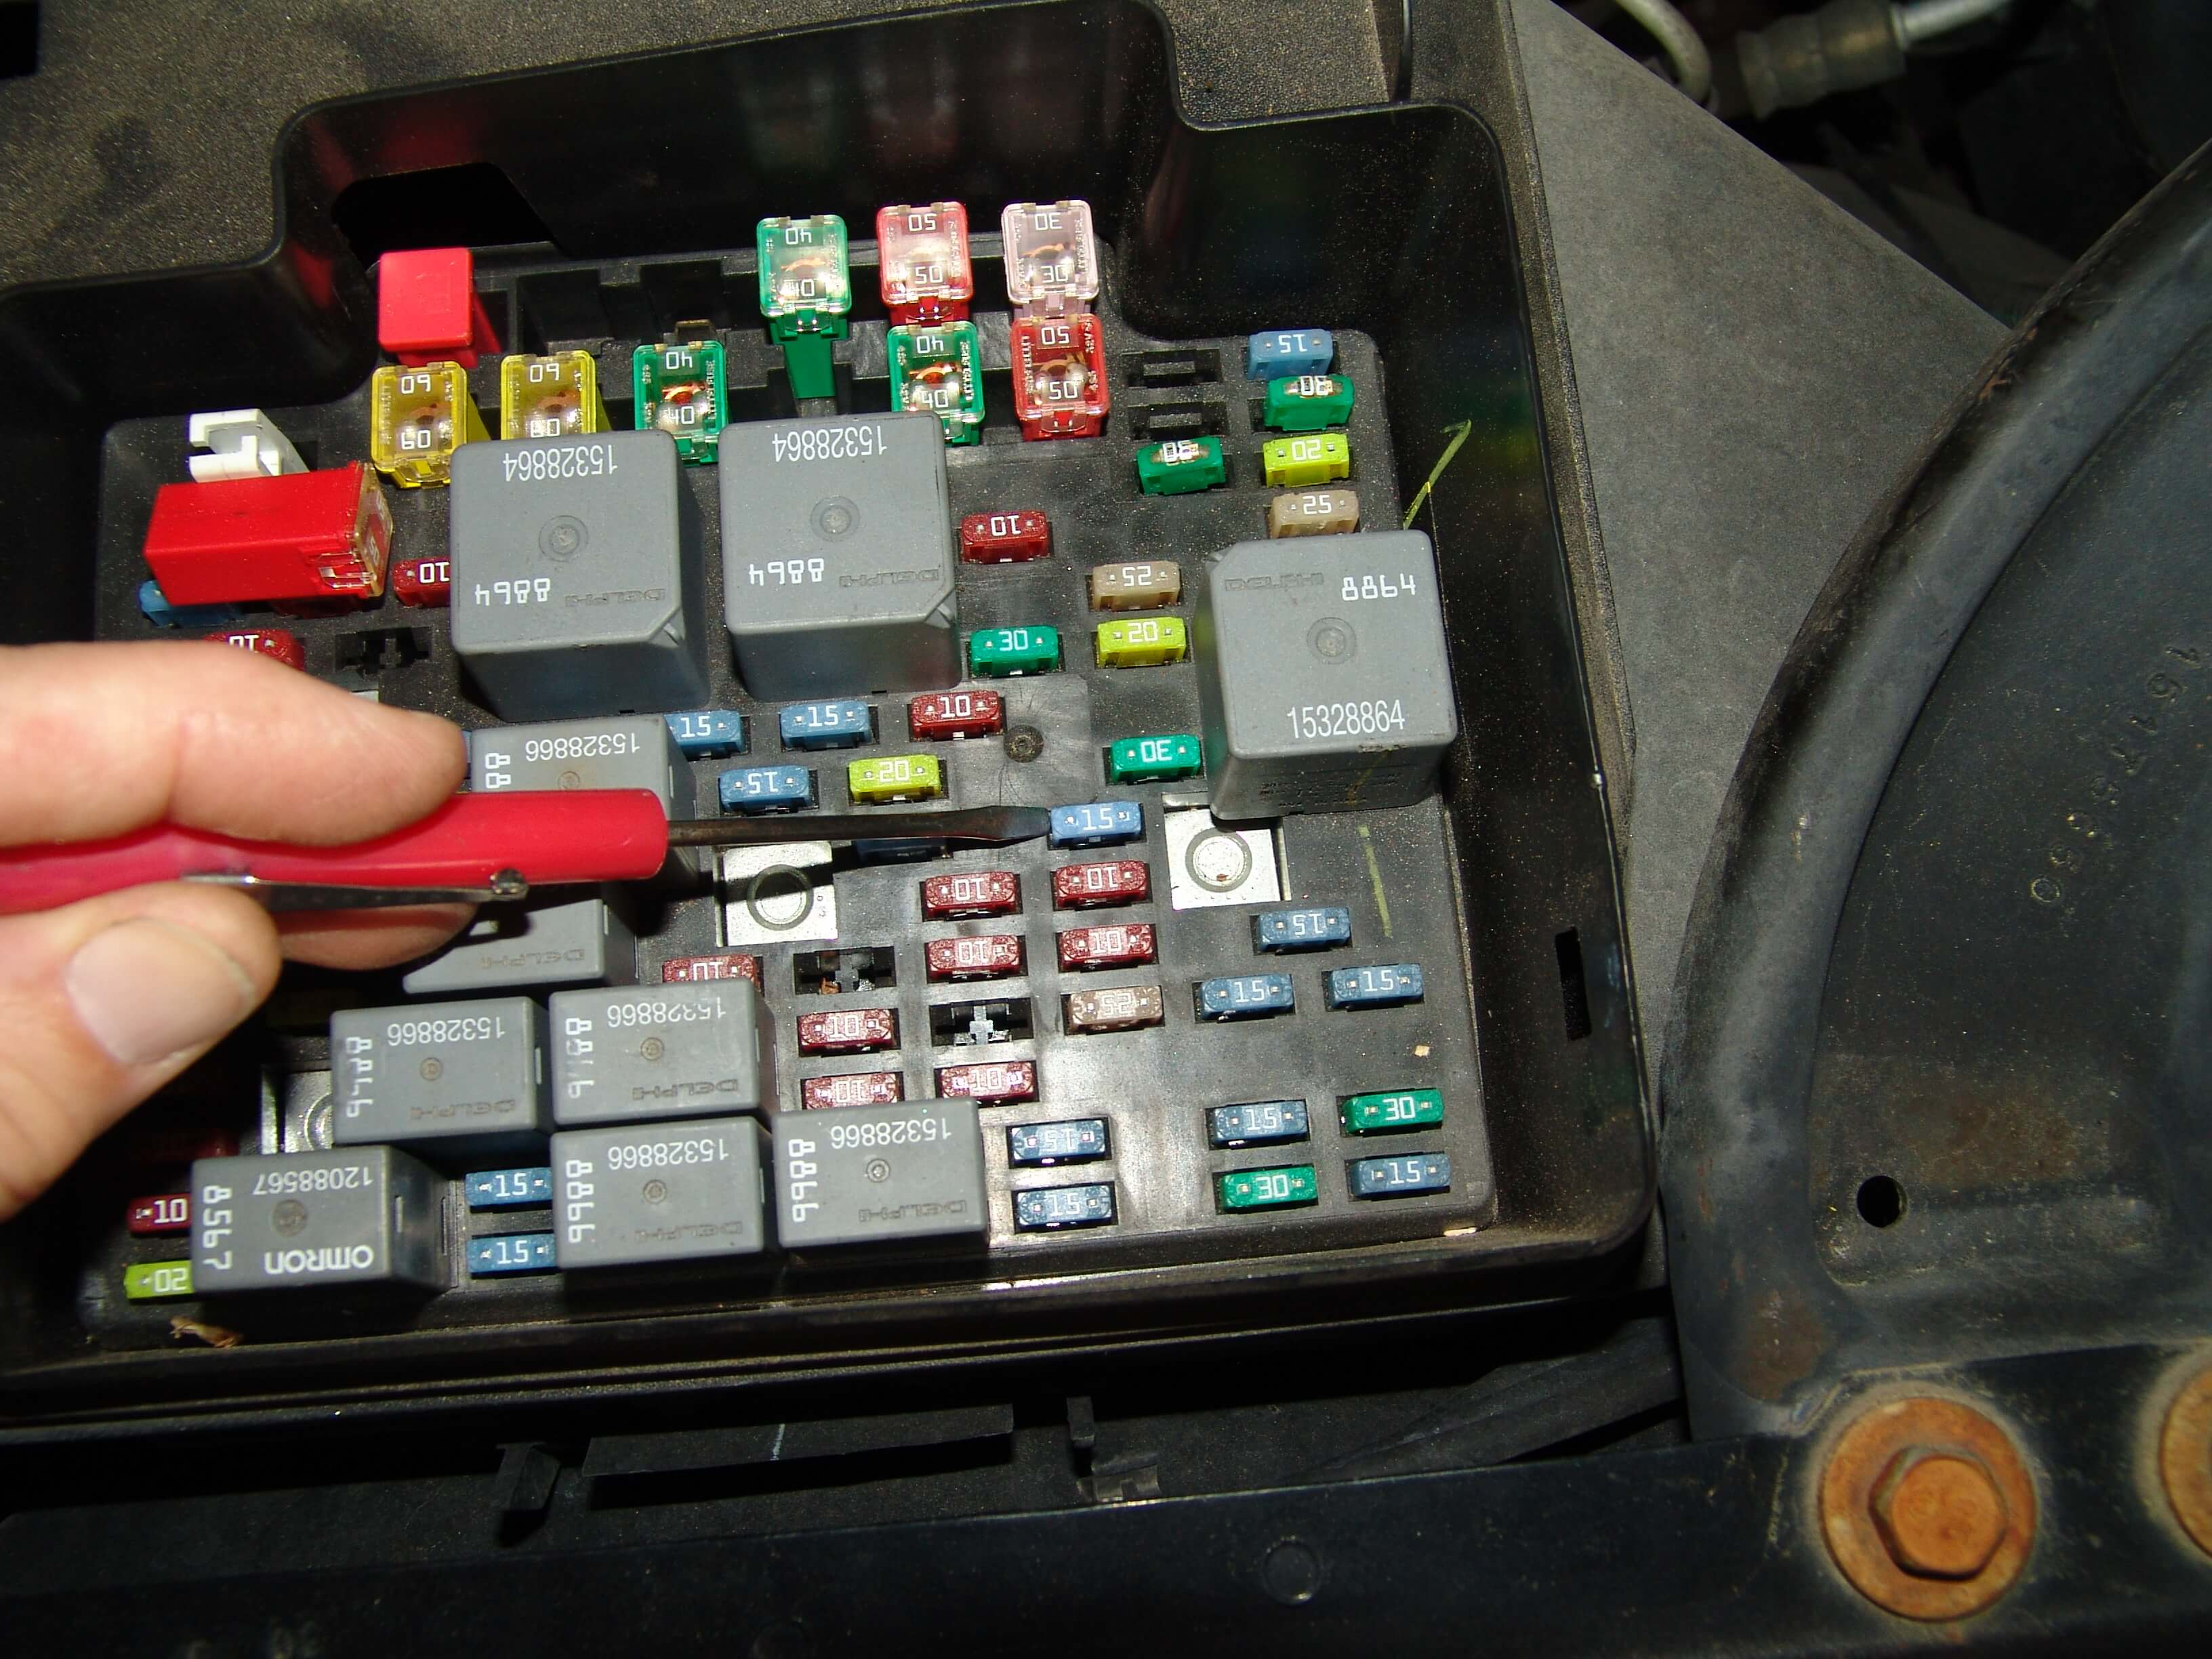 Checking the fuses found that the SIR or airbag light 15 amp fuse was blown.